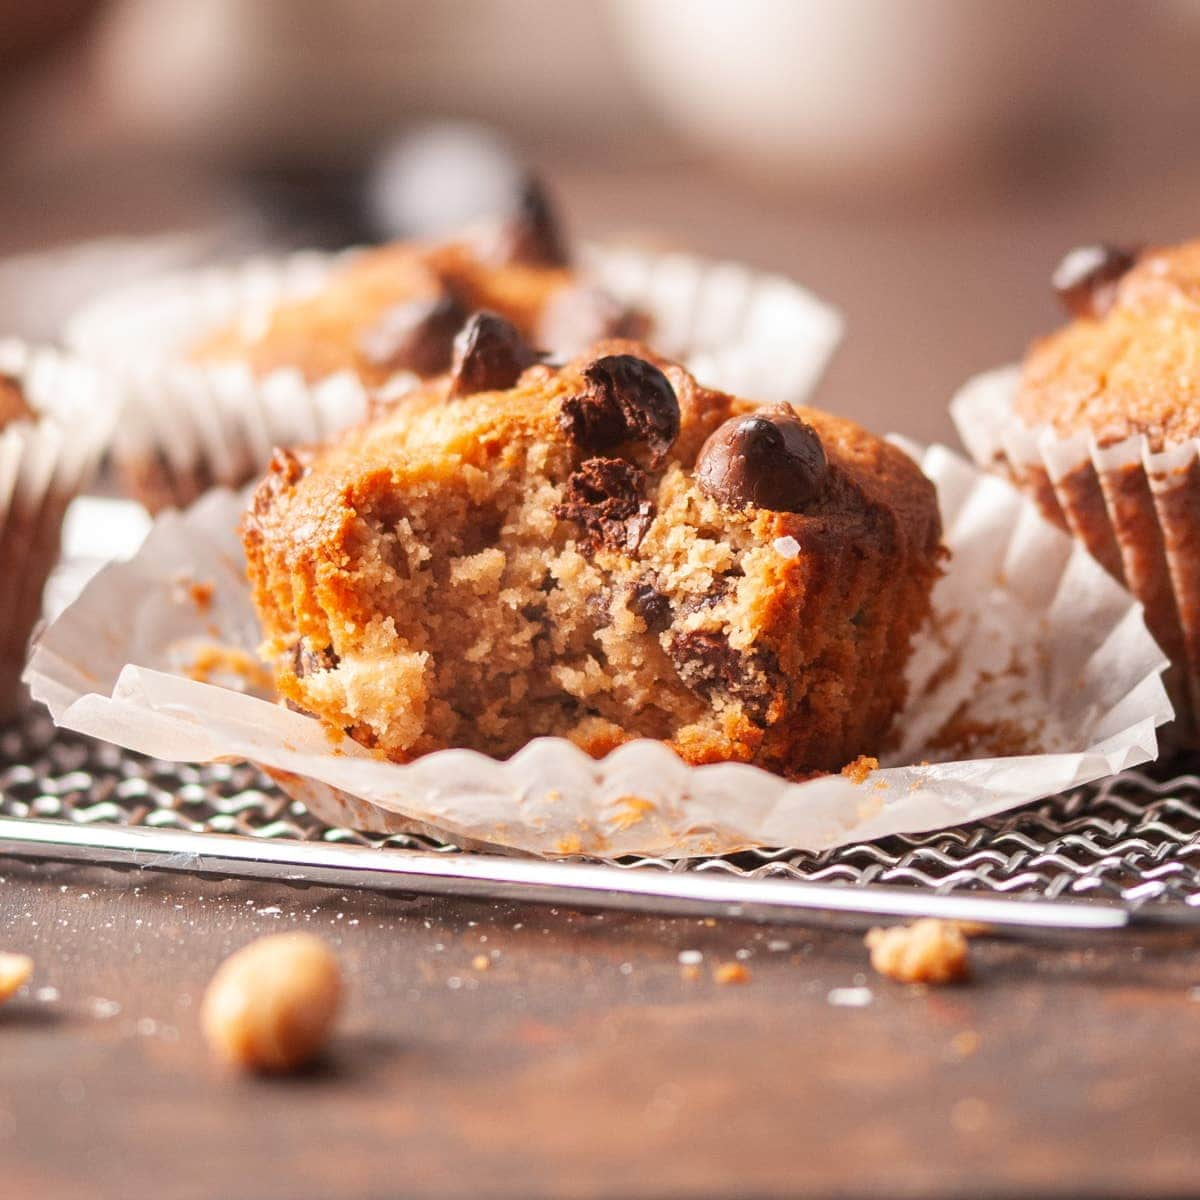 close up of peanut butter chocolate chip muffin with bite taken out